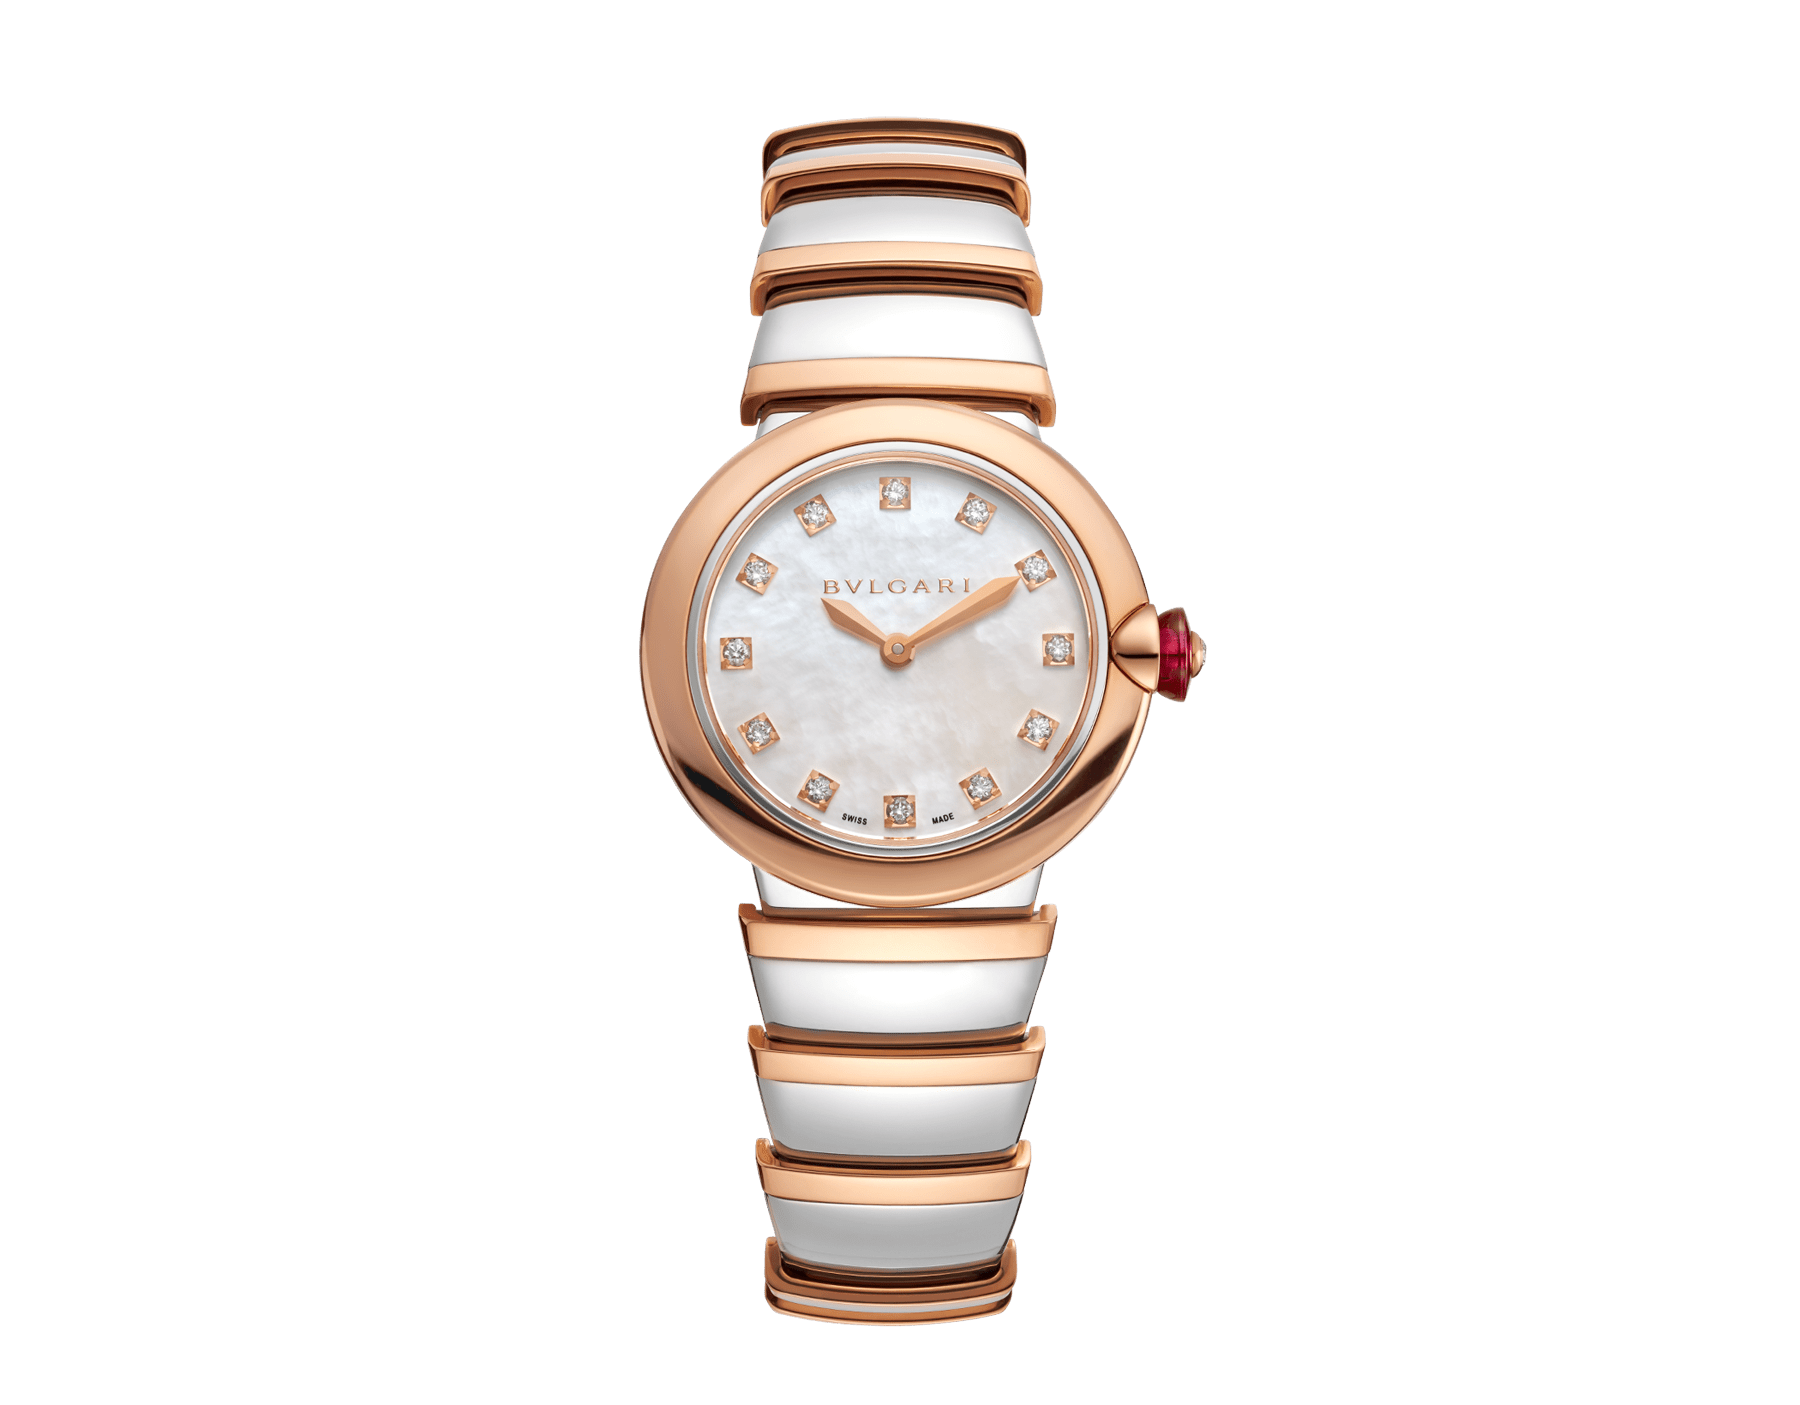 LVCEA watch in 18 kt rose gold and stainless steel case and bracelet, white mother-of-pearl dial and diamond indexes. 102194 image 1